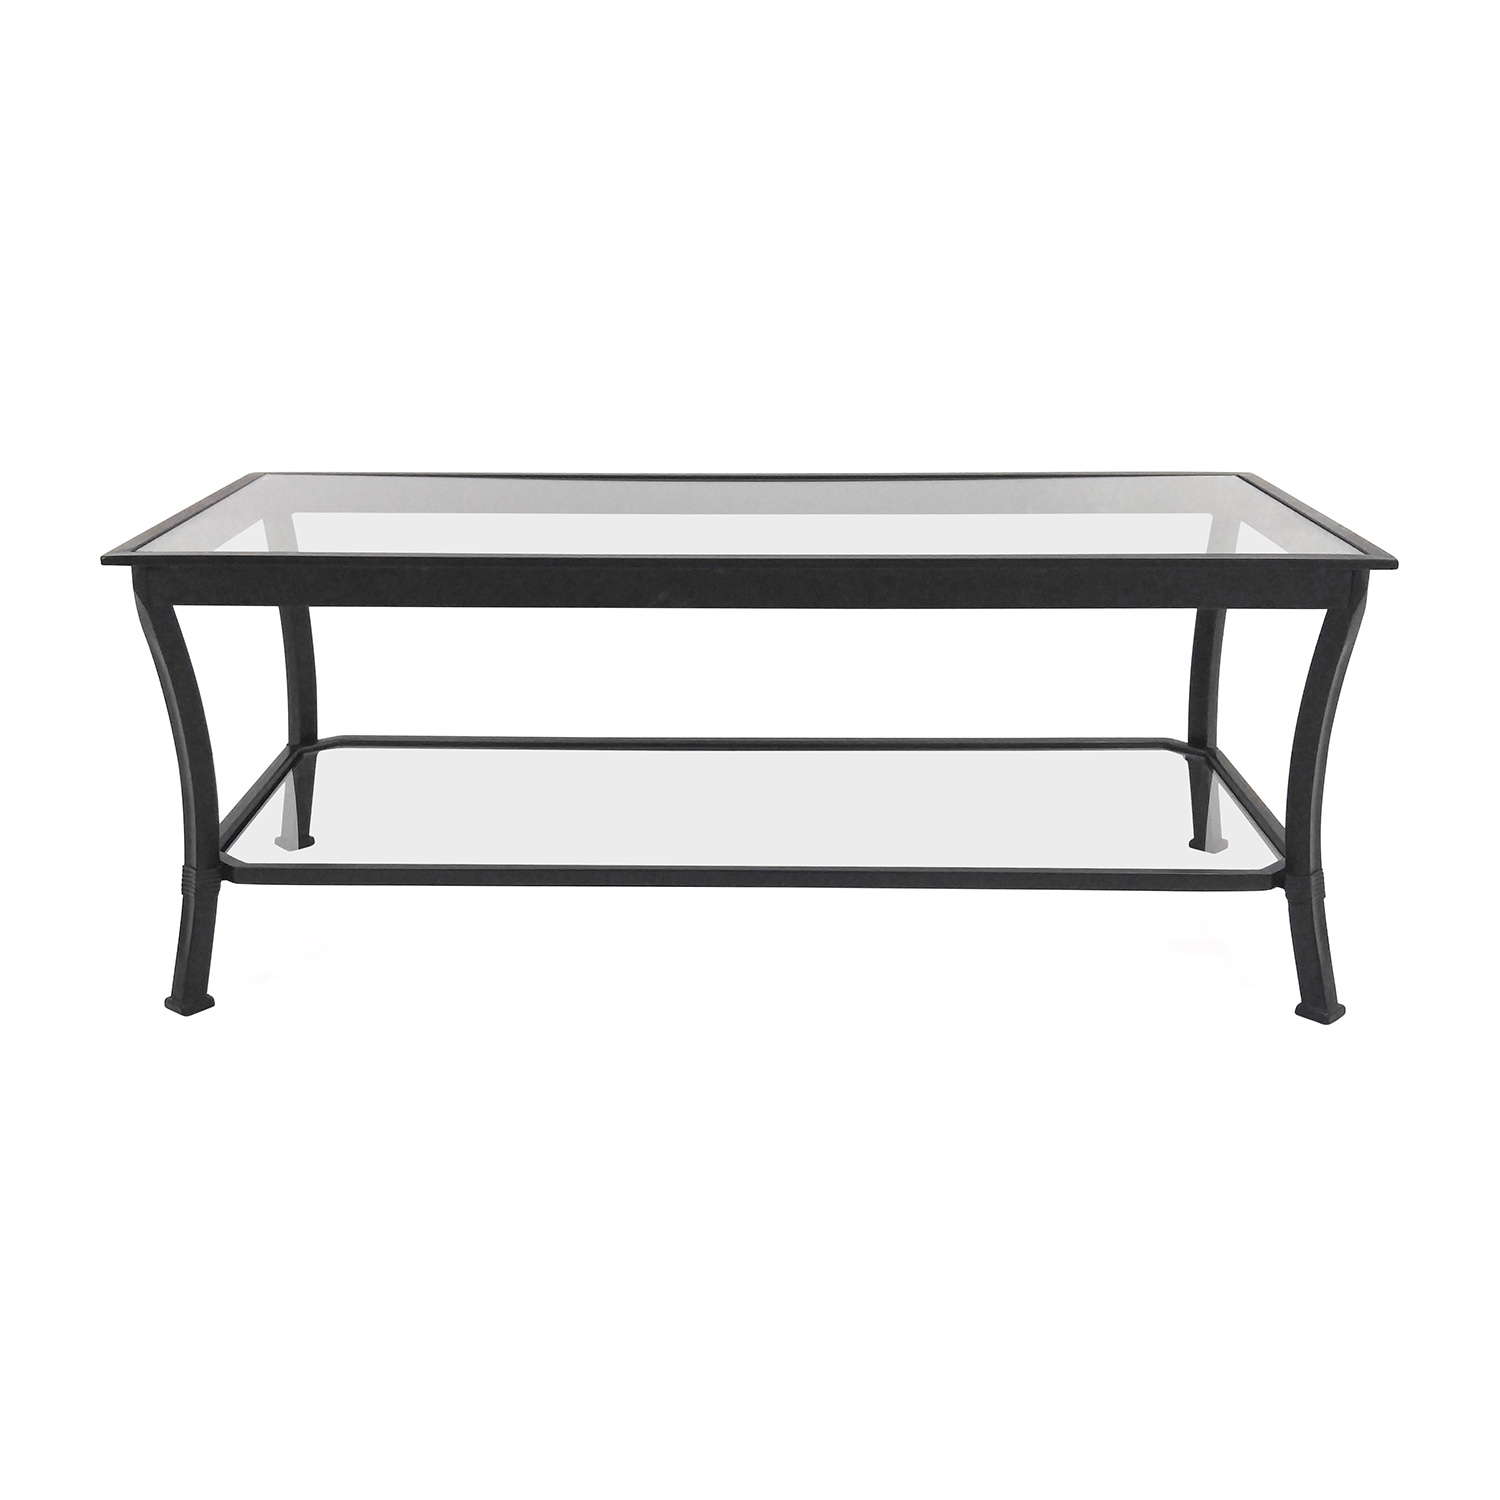 49 off crate and barrel crate barrel glass coffee table tables Used glass coffee table